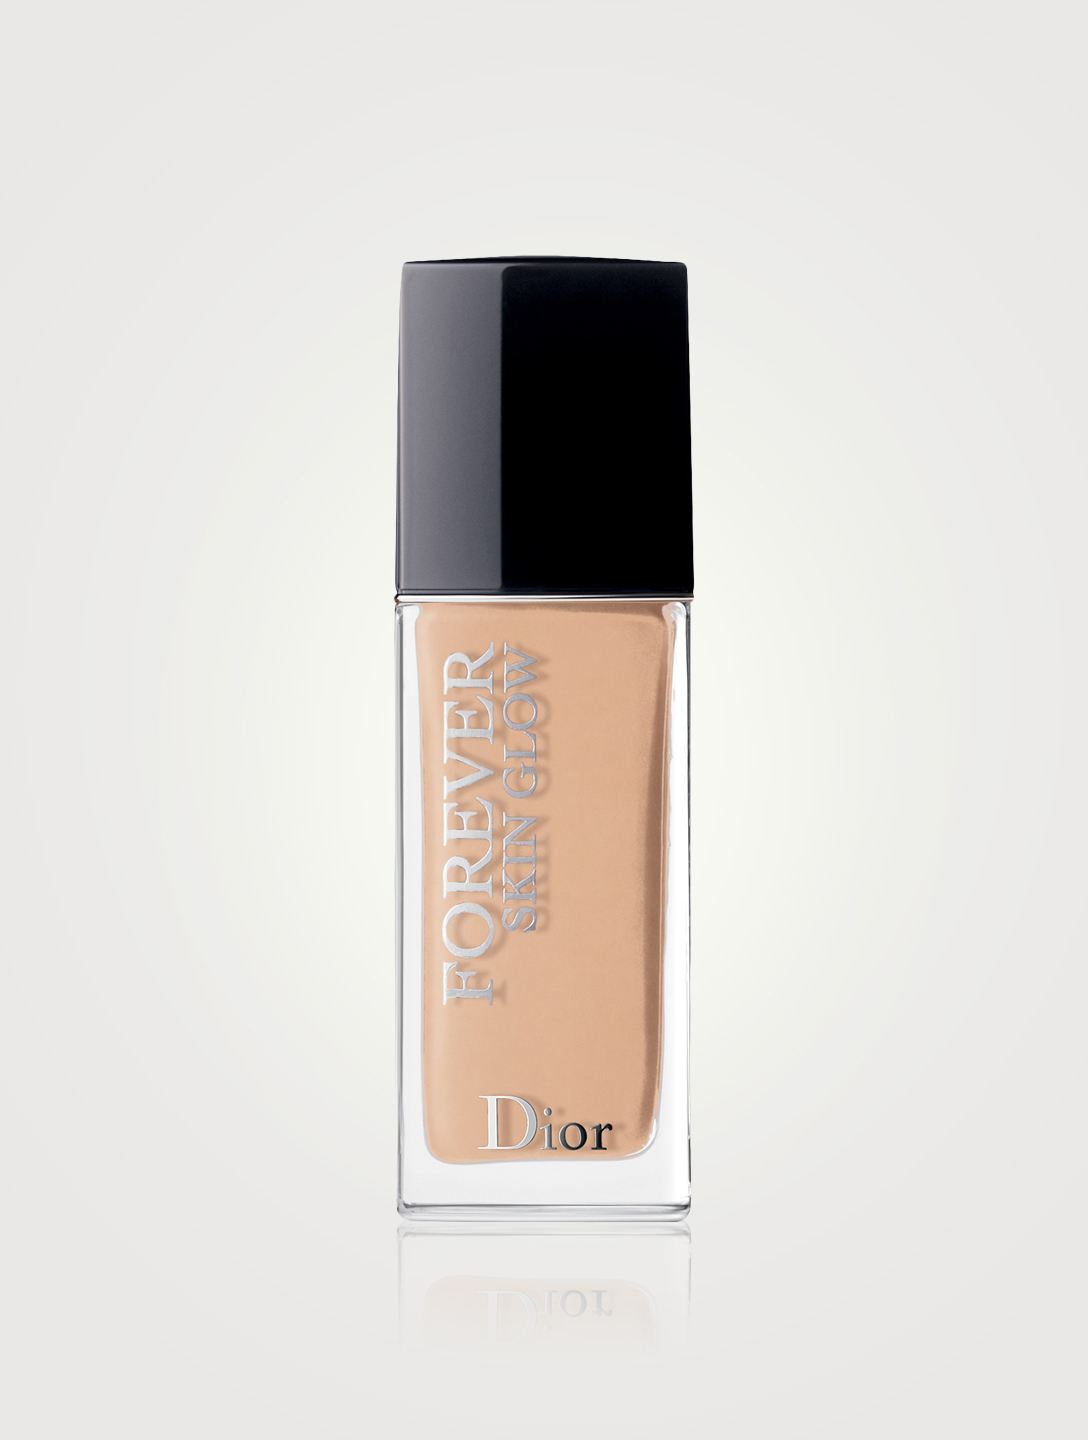 DIOR Dior Forever Skin Glow 24h Wear Radiant Perfection Skin-Caring Foundation Beauty Neutral